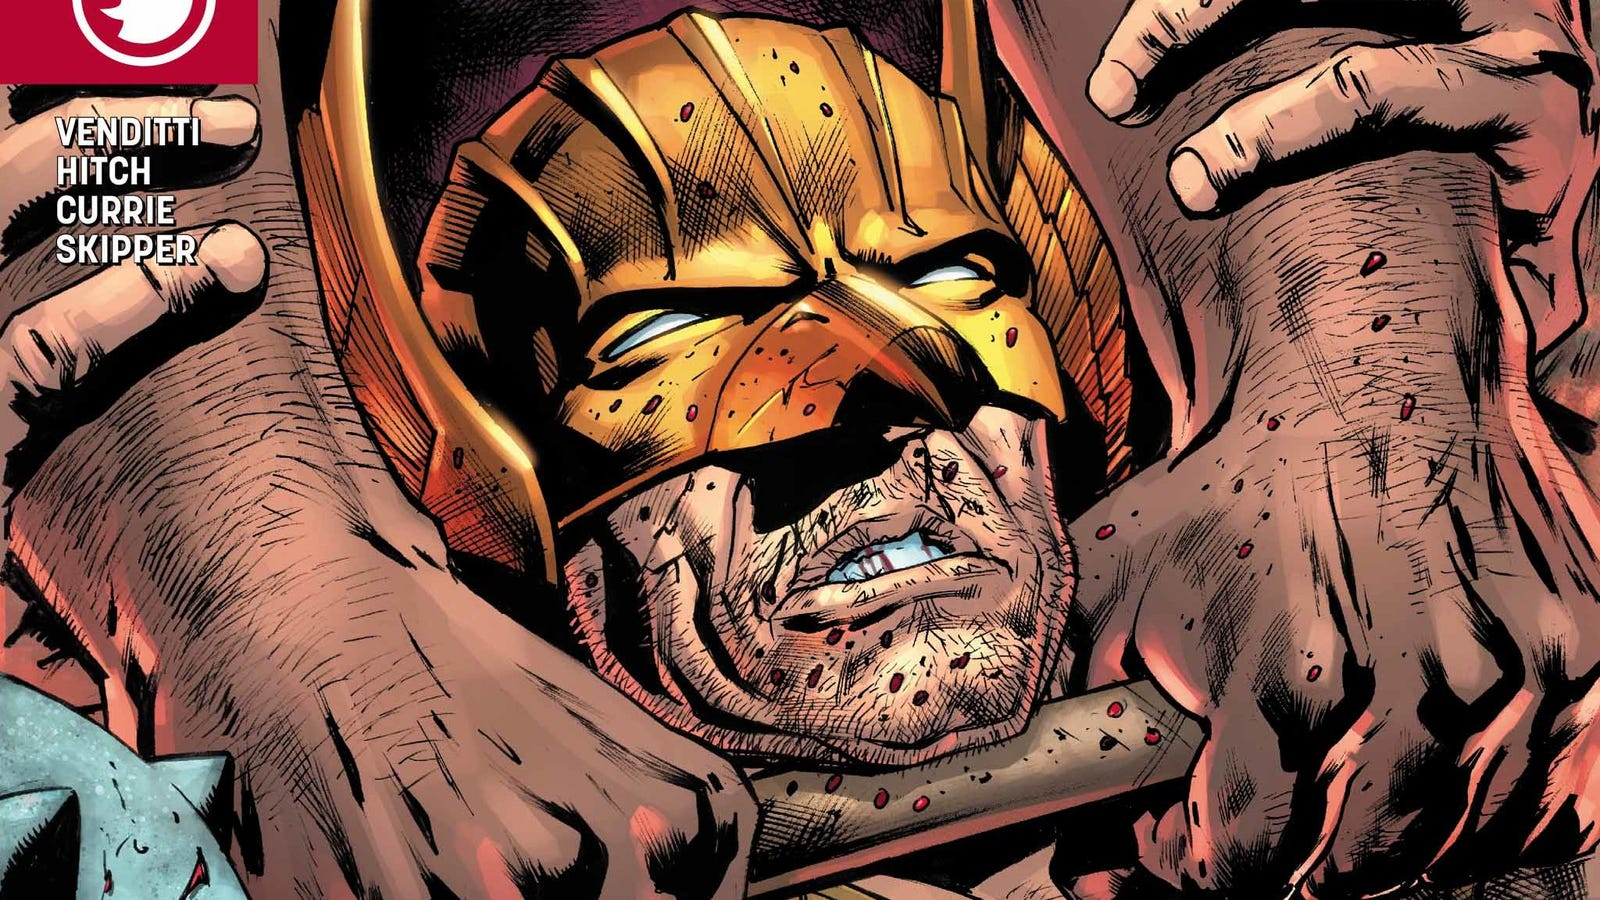 Hawkman's deadly past catches up with him in this exclusive preview